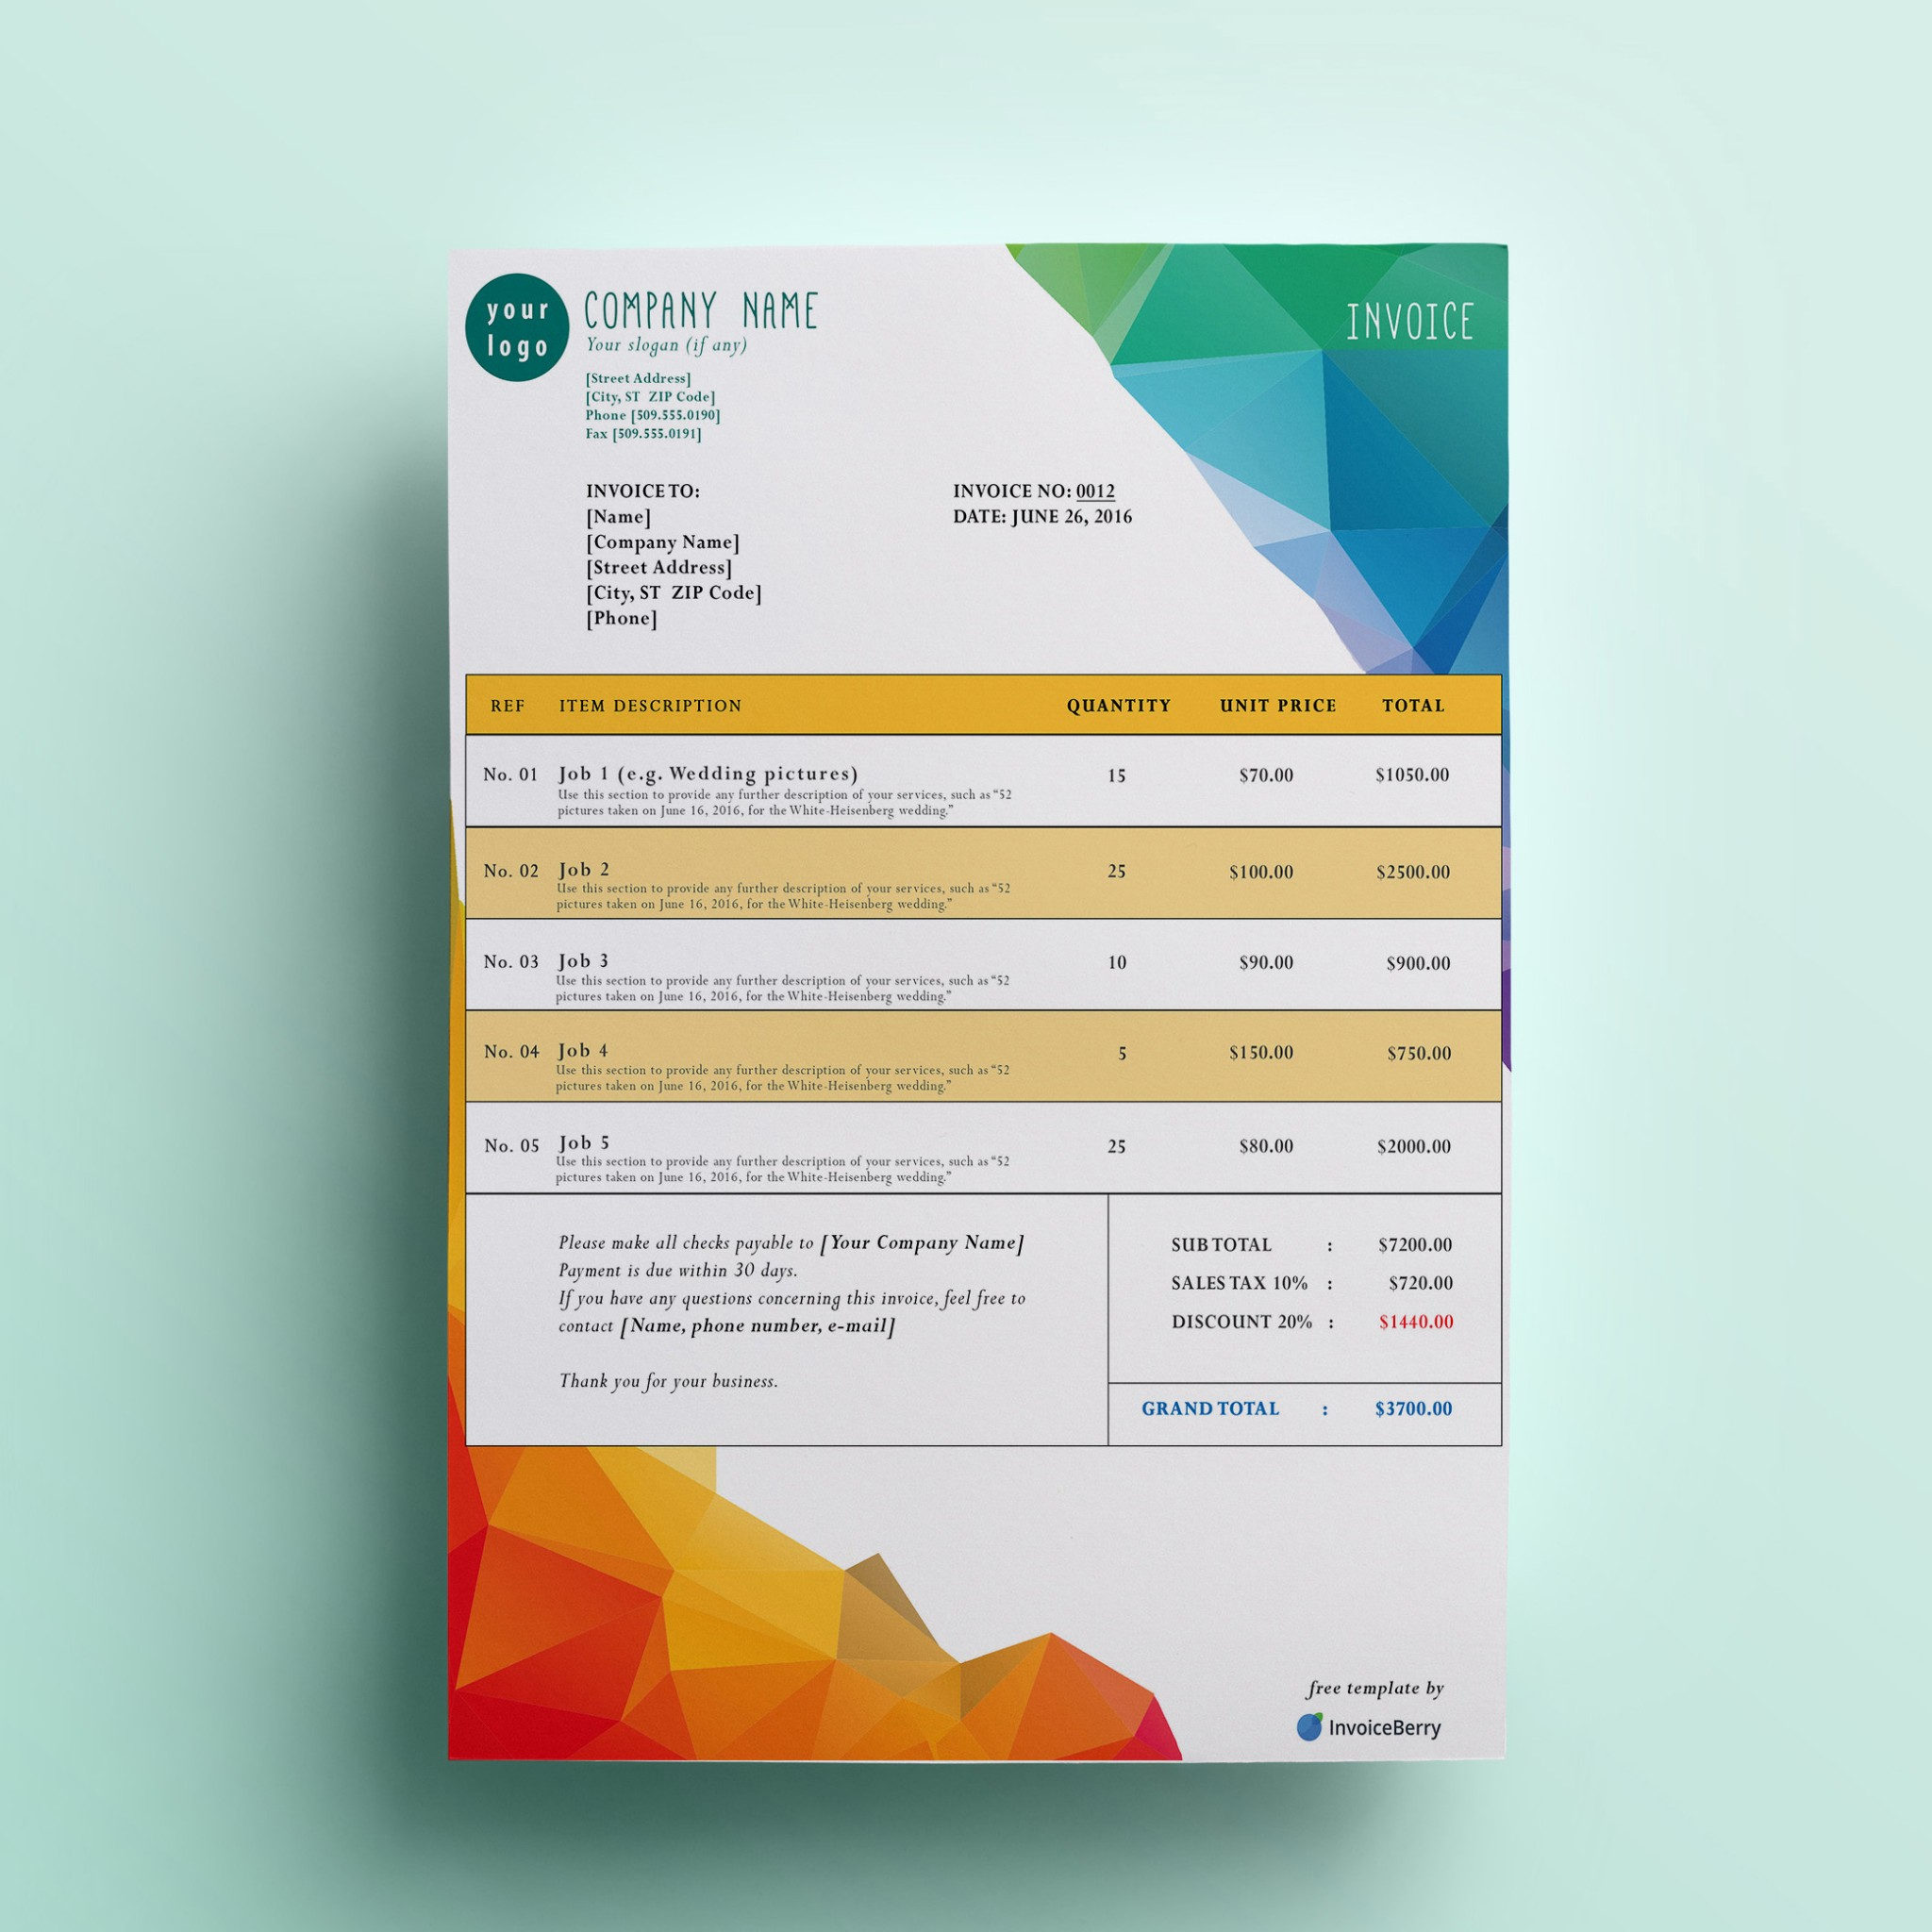 Free Invoice Templates By InvoiceBerry The Grid System - Invoices templates free